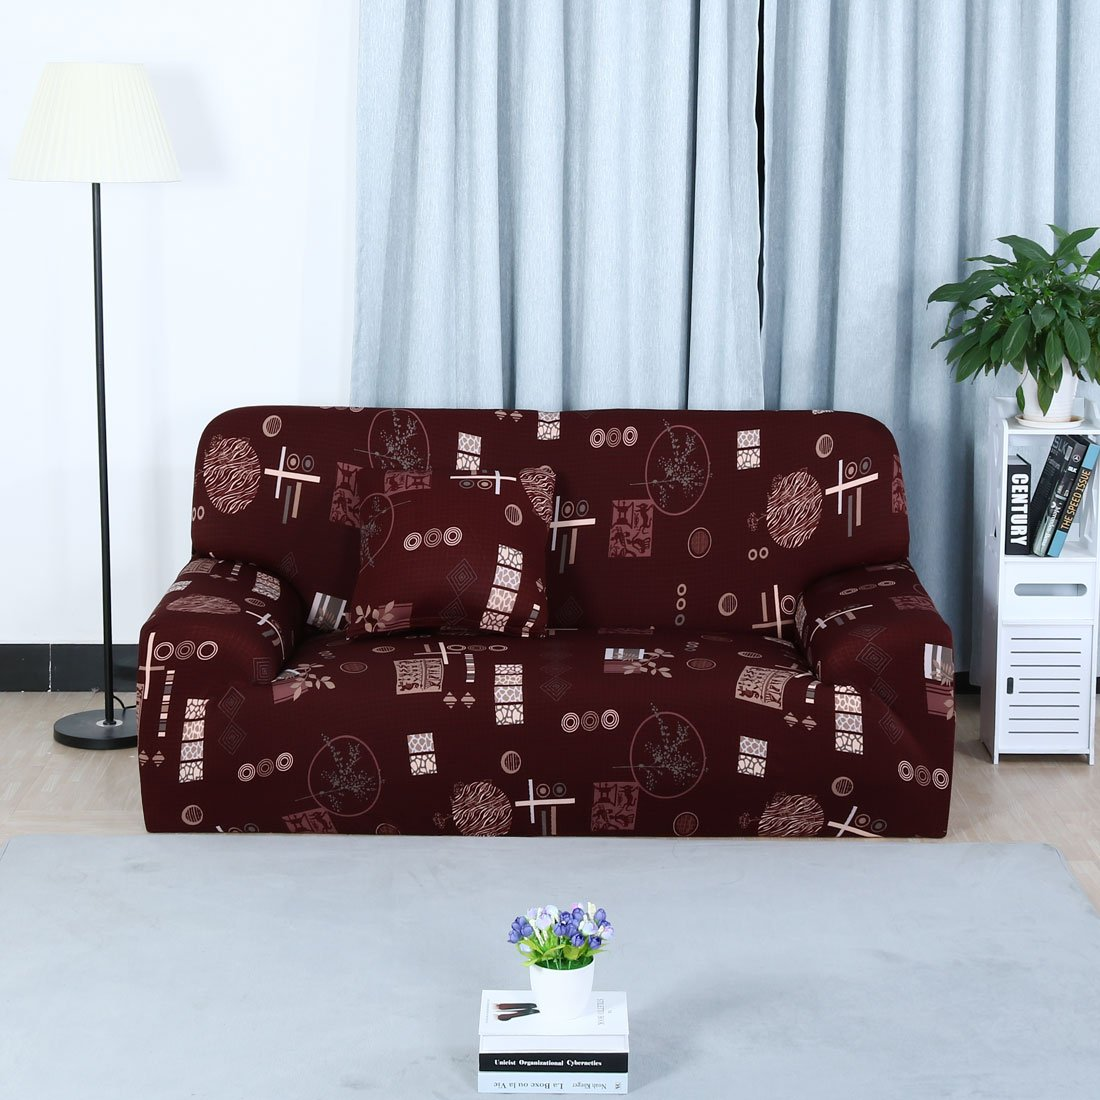 uxcell Stretch Sofa Cover Loveseat Couch Slipcover, Machine Washable, Stylish Furniture Protector Covers with One Cushion Case (4 Seater, Pattern 8)